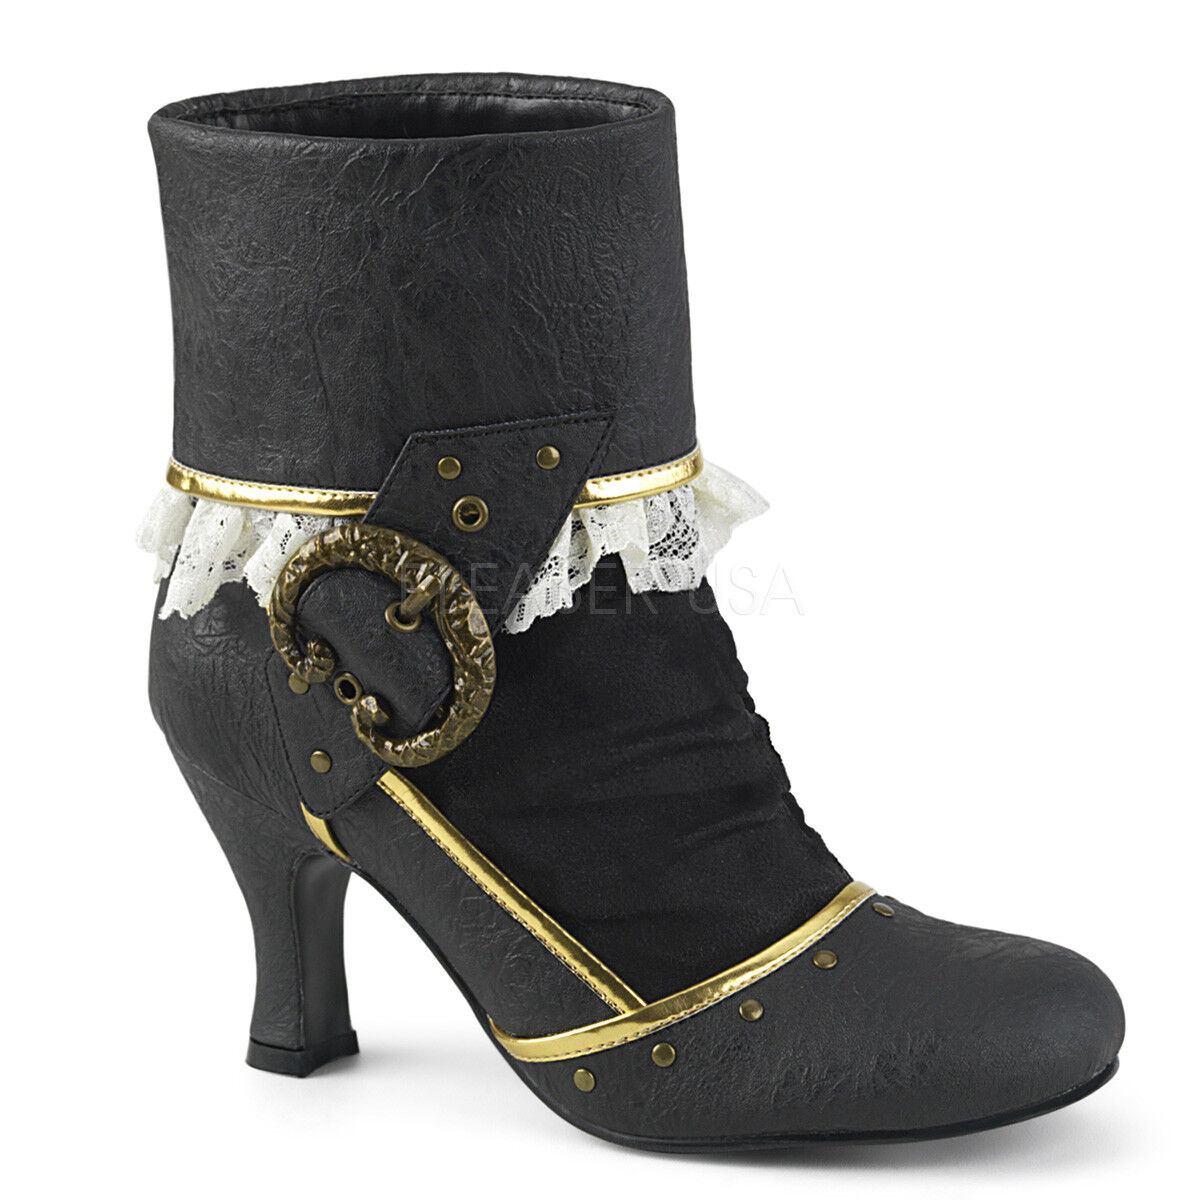 Braun Gold Victorian Steampunk Ivory Lace Womans Costume 8 Heels Schuhes 6 7 8 Costume 9 10 b52d56